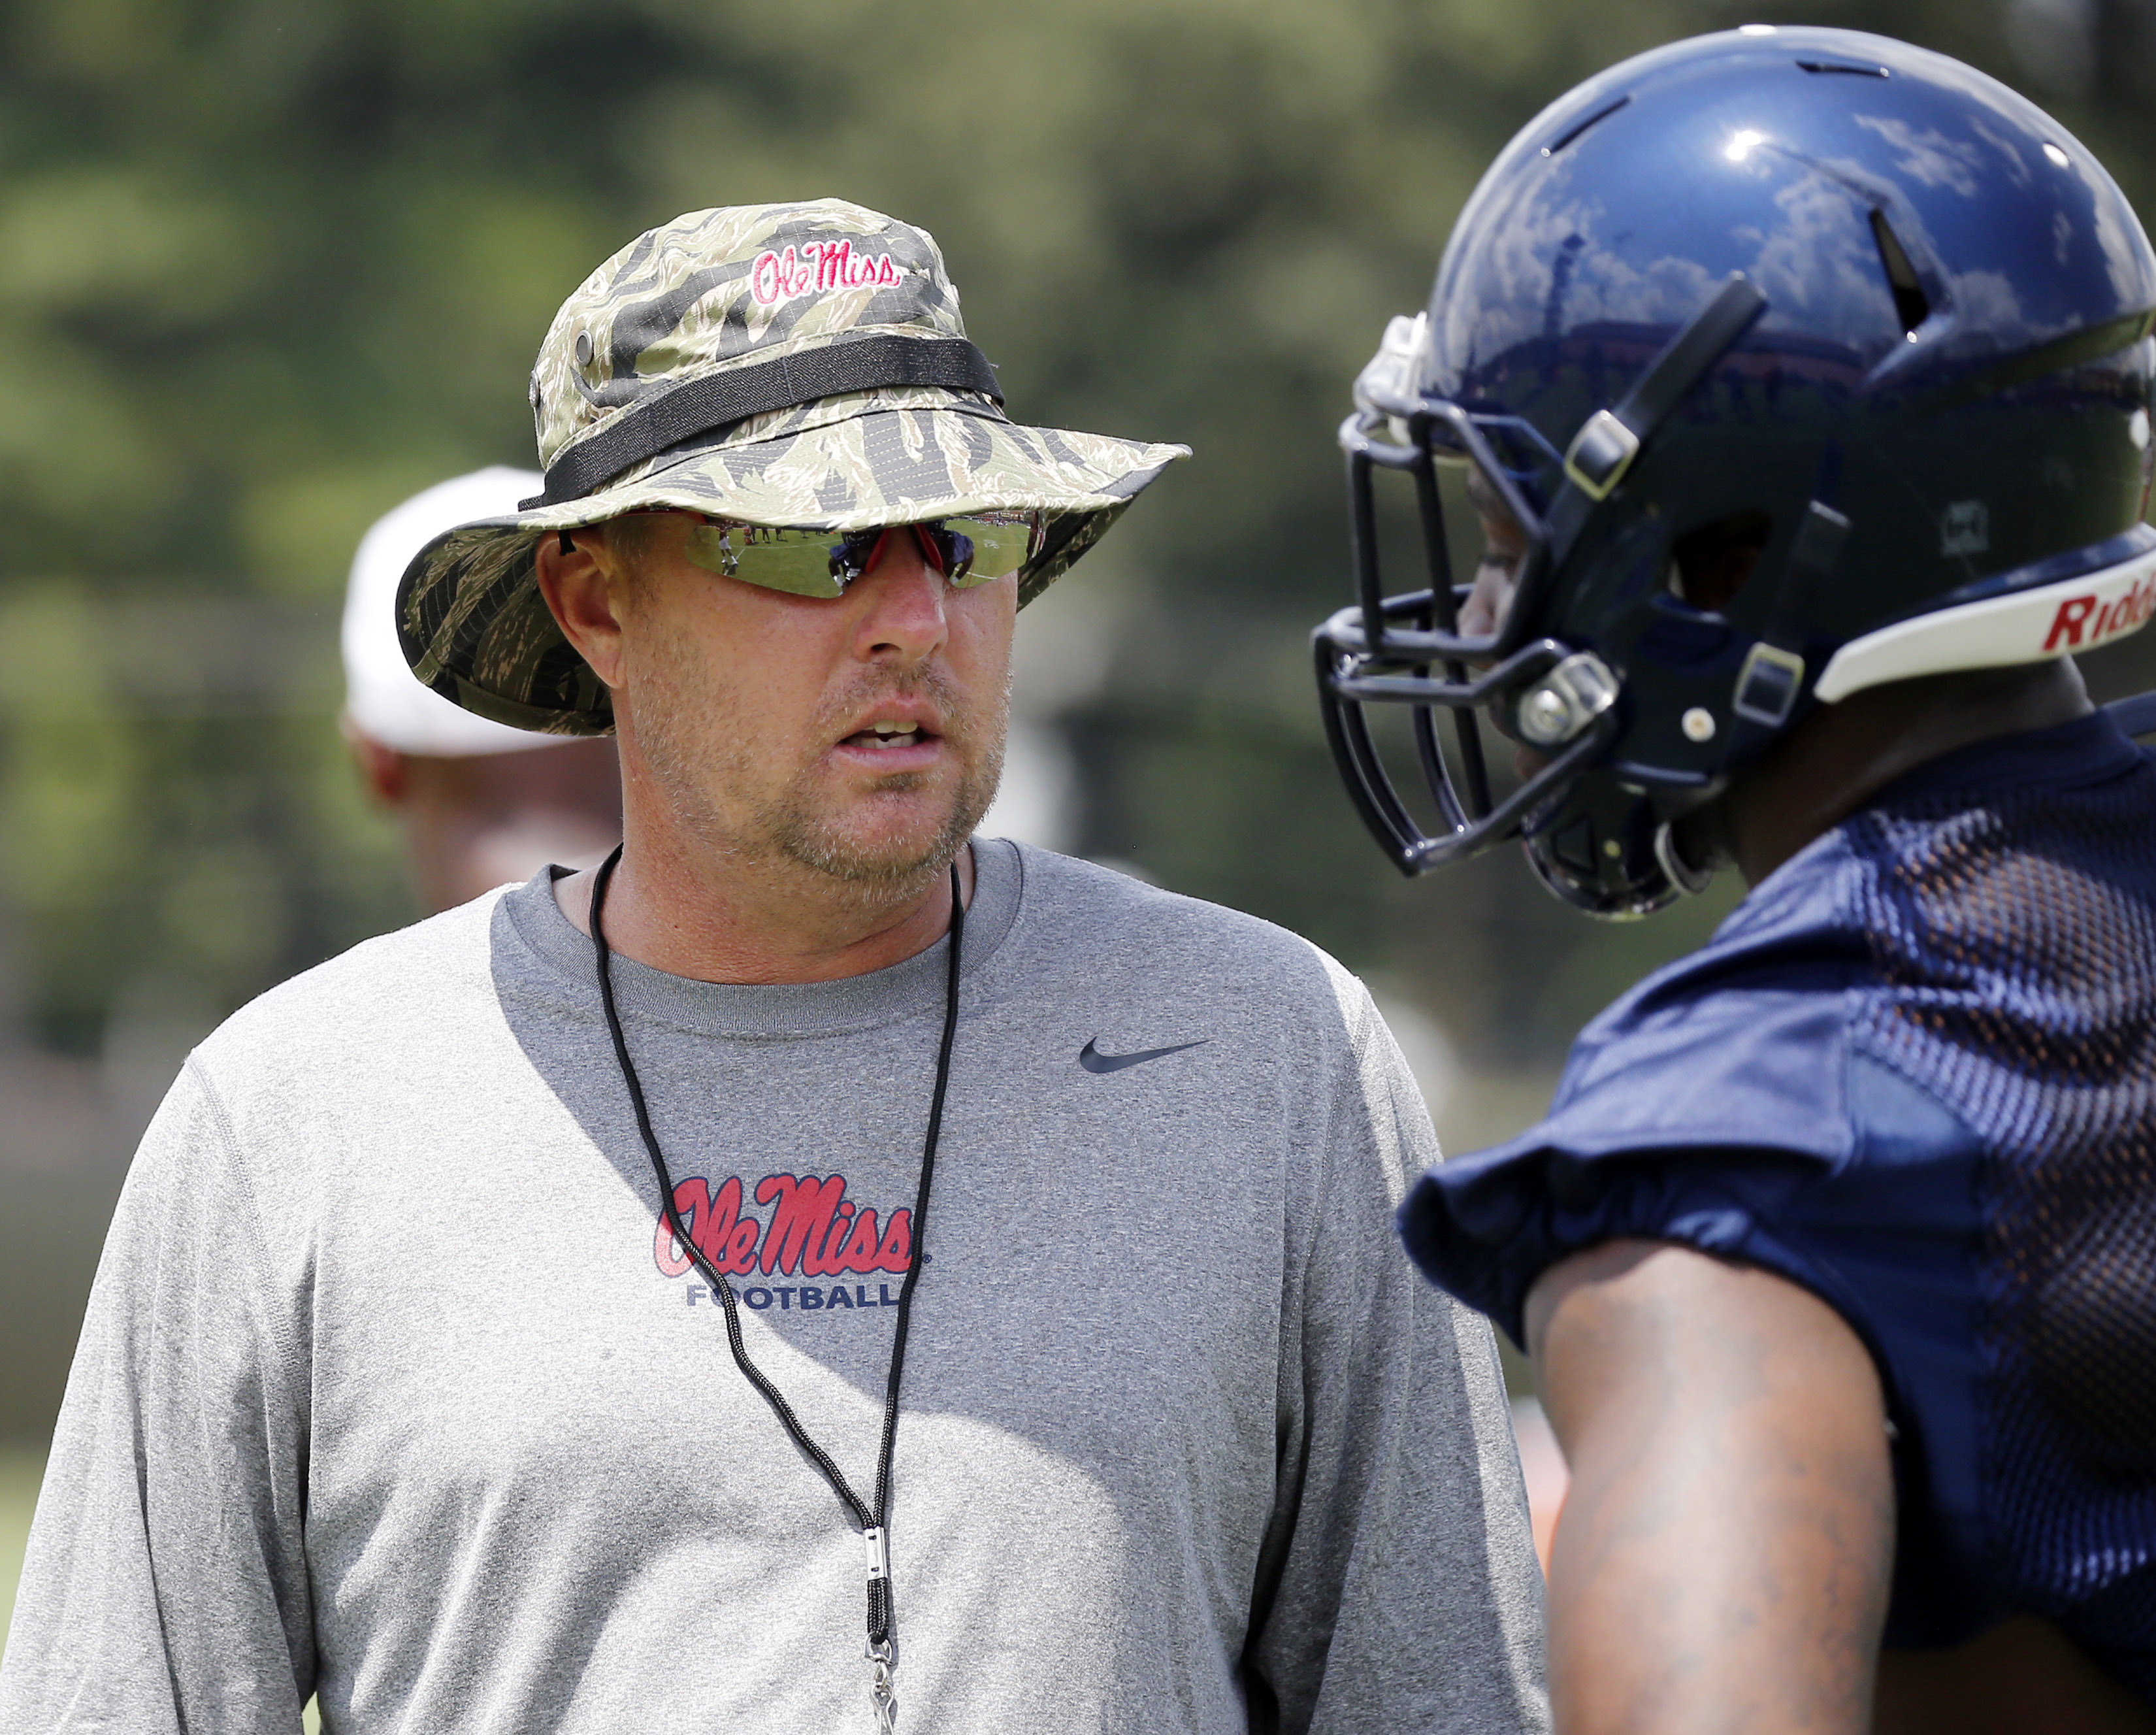 Mississippi football coach Hugh Freeze speaks with a player during an NCAA college football practice prior to media day activities, Monday, Aug. 8, 2016, in Oxford, Miss. (AP Photo/Rogelio V. Solis)